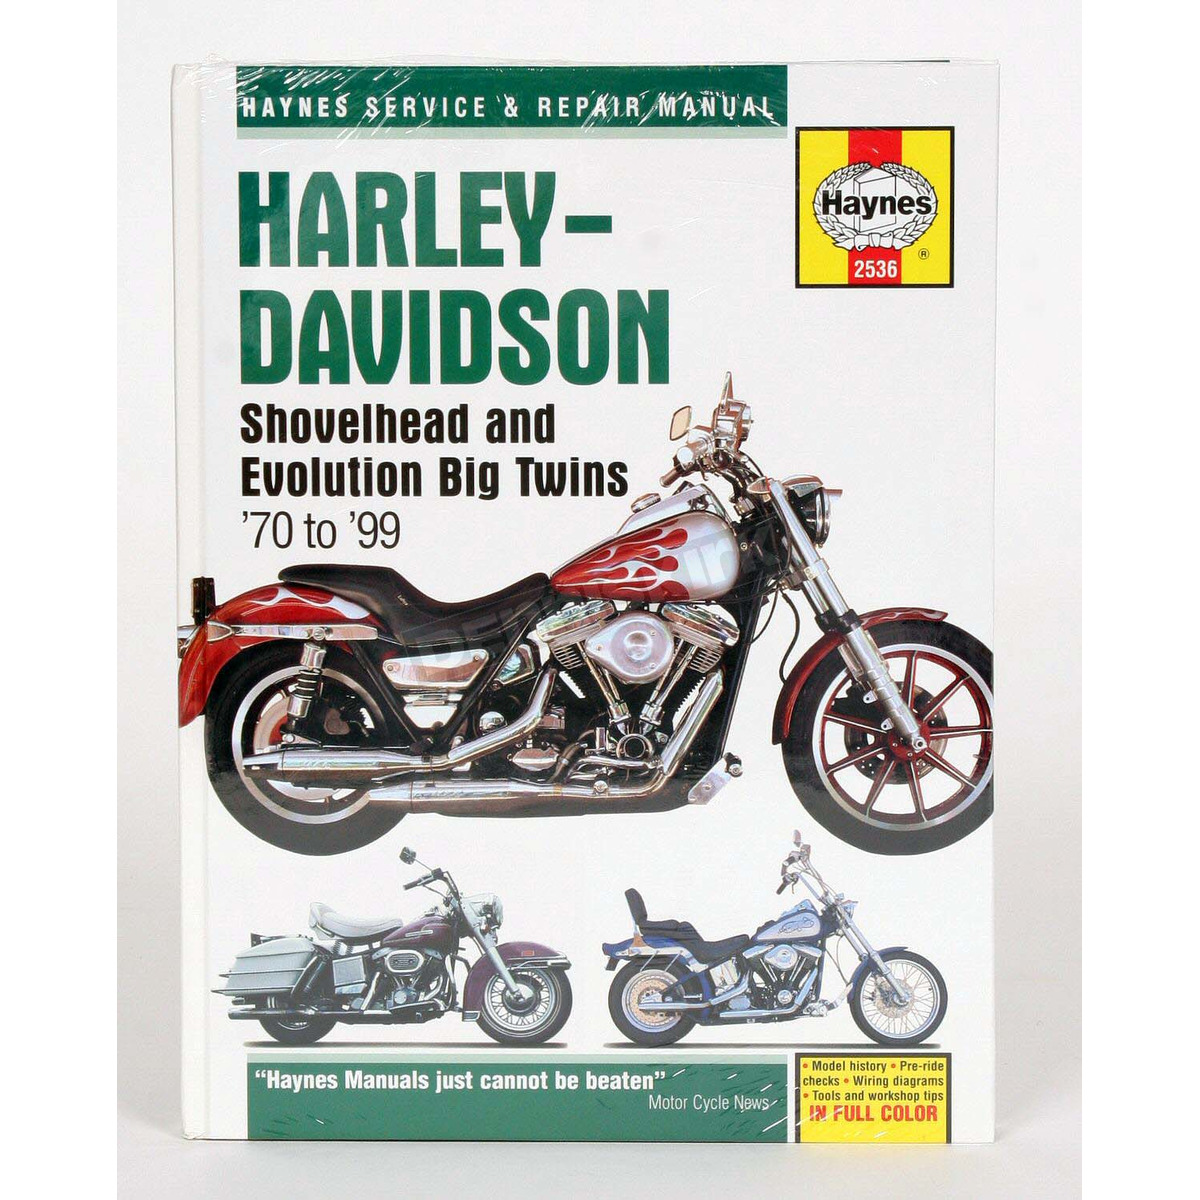 haynes repair manual 2536 harley davidson motorcycle dennis kirk rh denniskirk com Haynes Manual Pictures Back Haynes Manual Monte Carlo Back